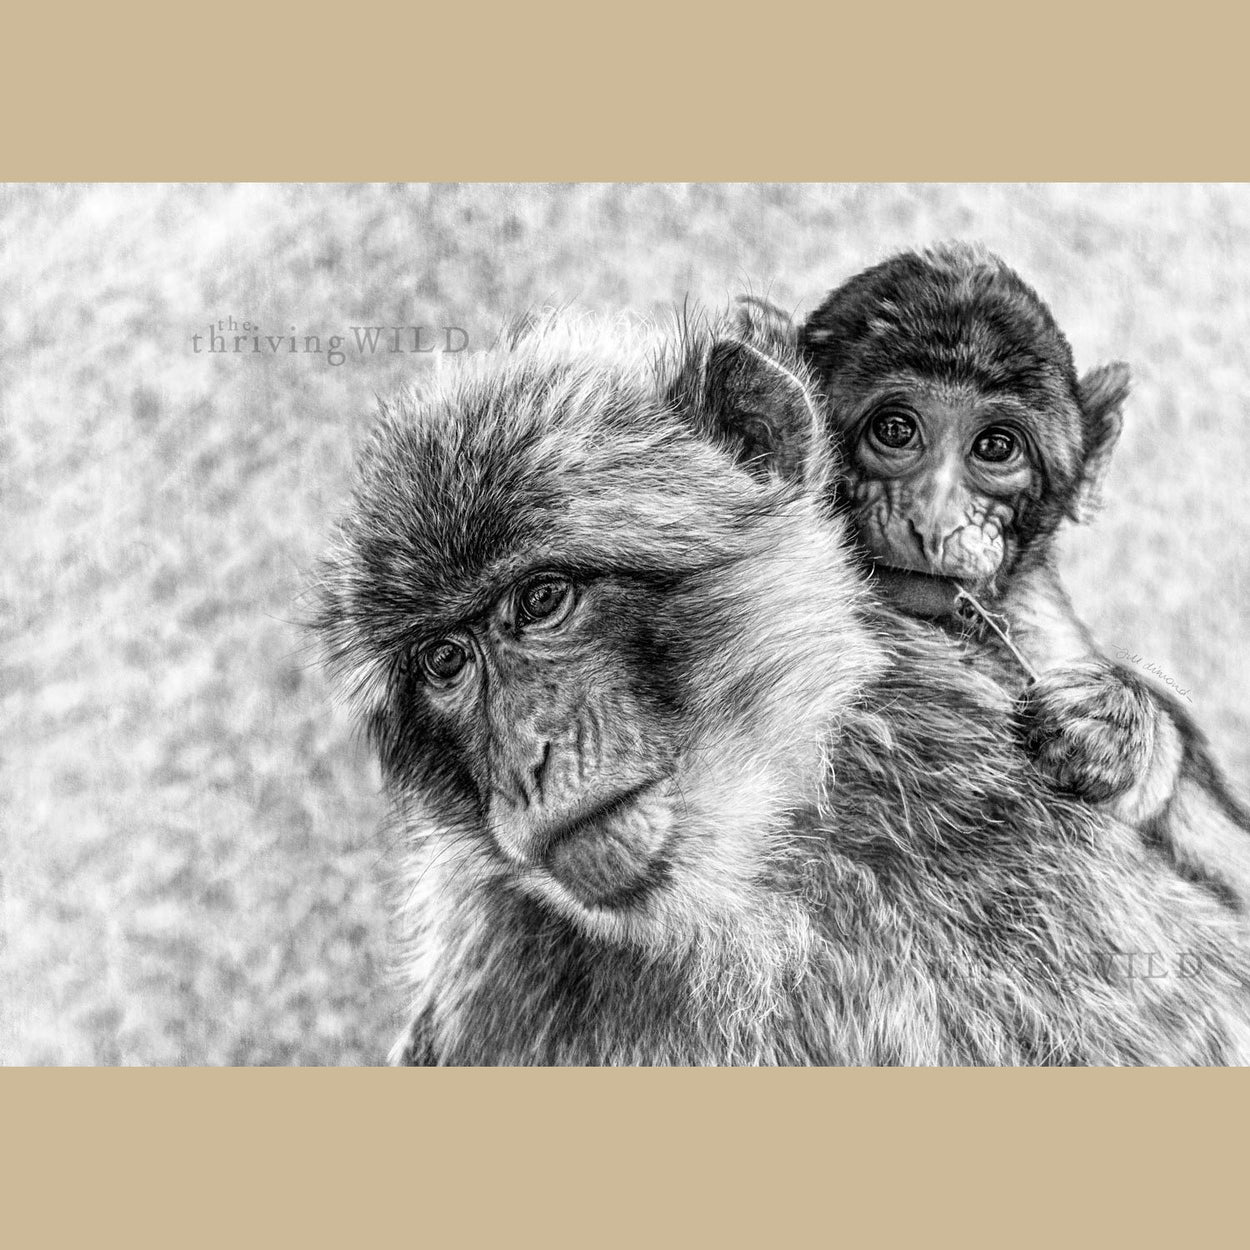 Macaques Mother & Baby Digital Drawing - The Thriving Wild